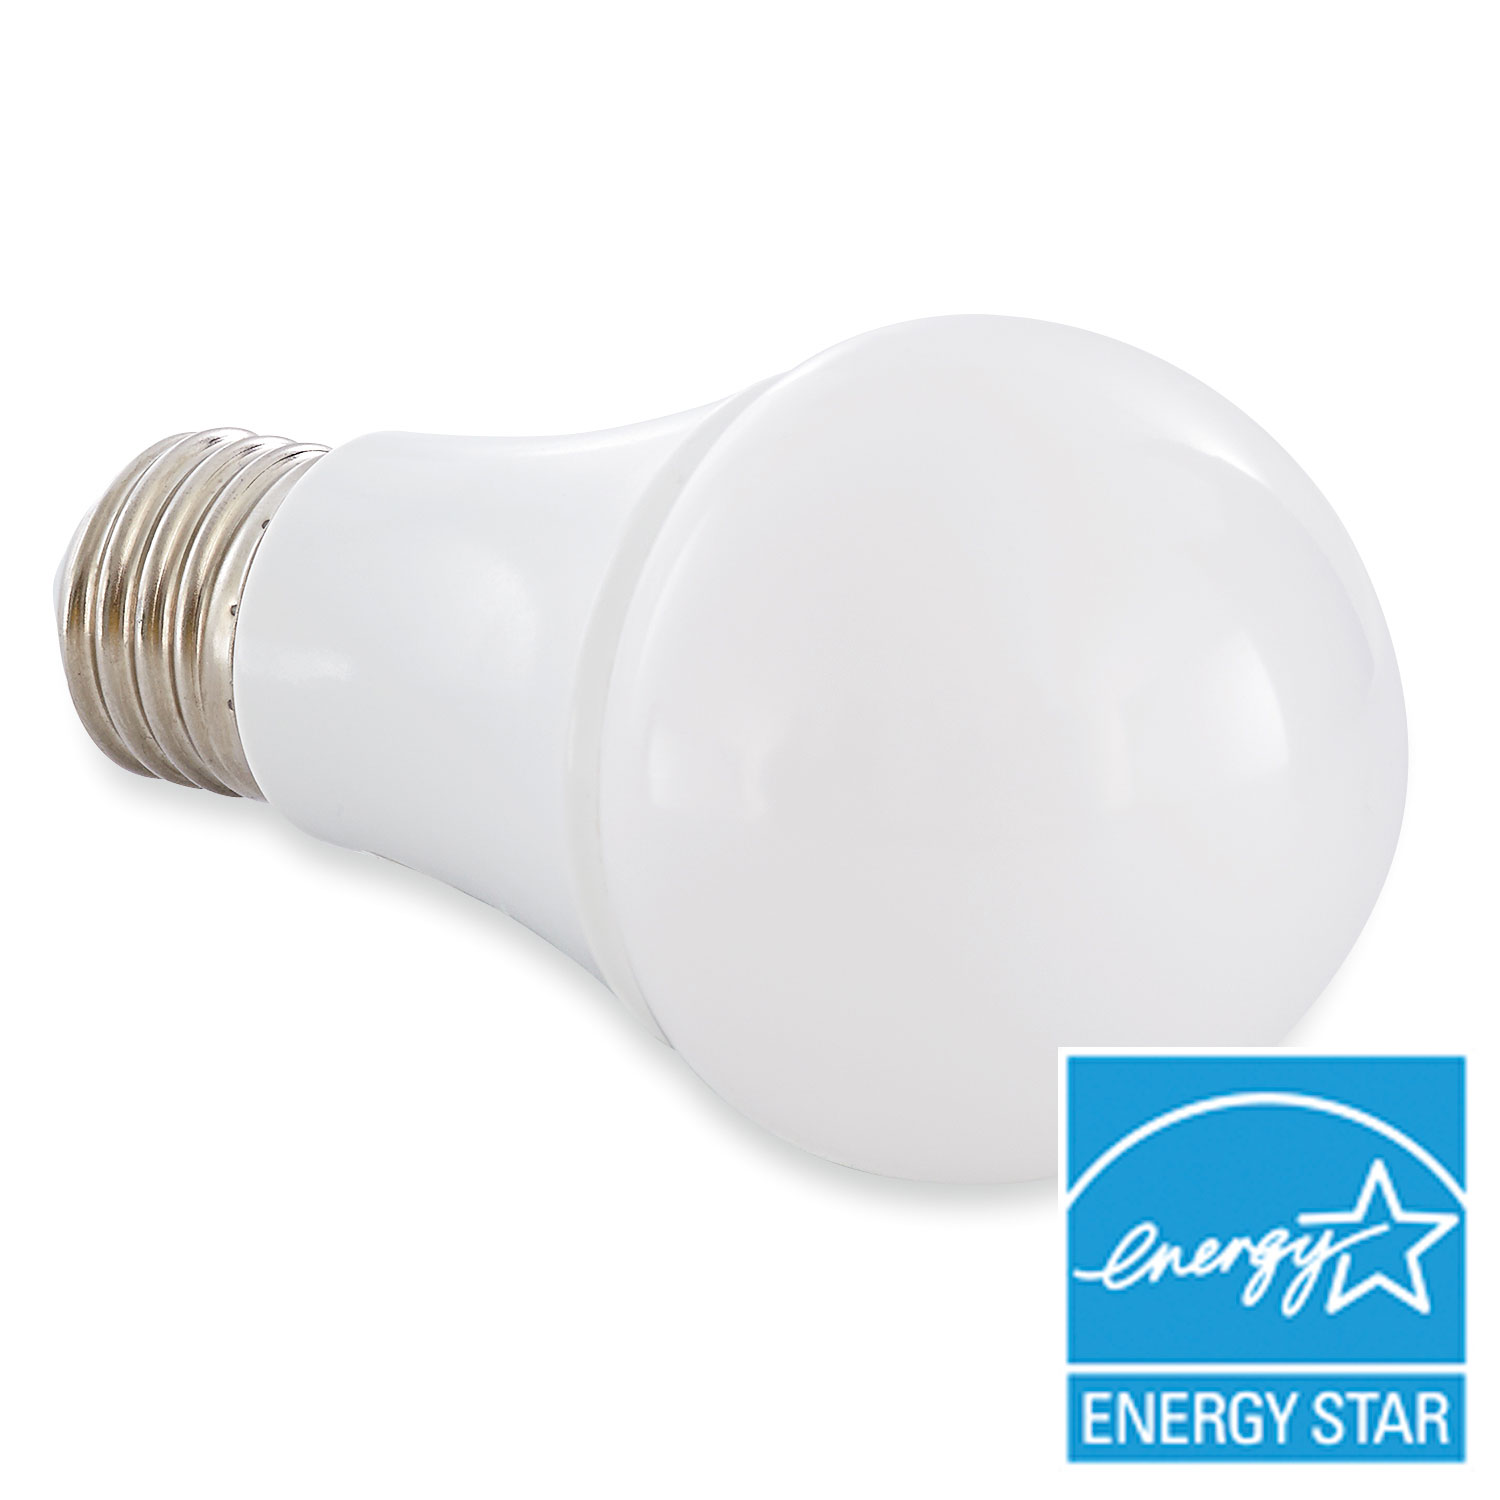 Verbatim LED Dimmable Enery Star, 98950A19, 60W